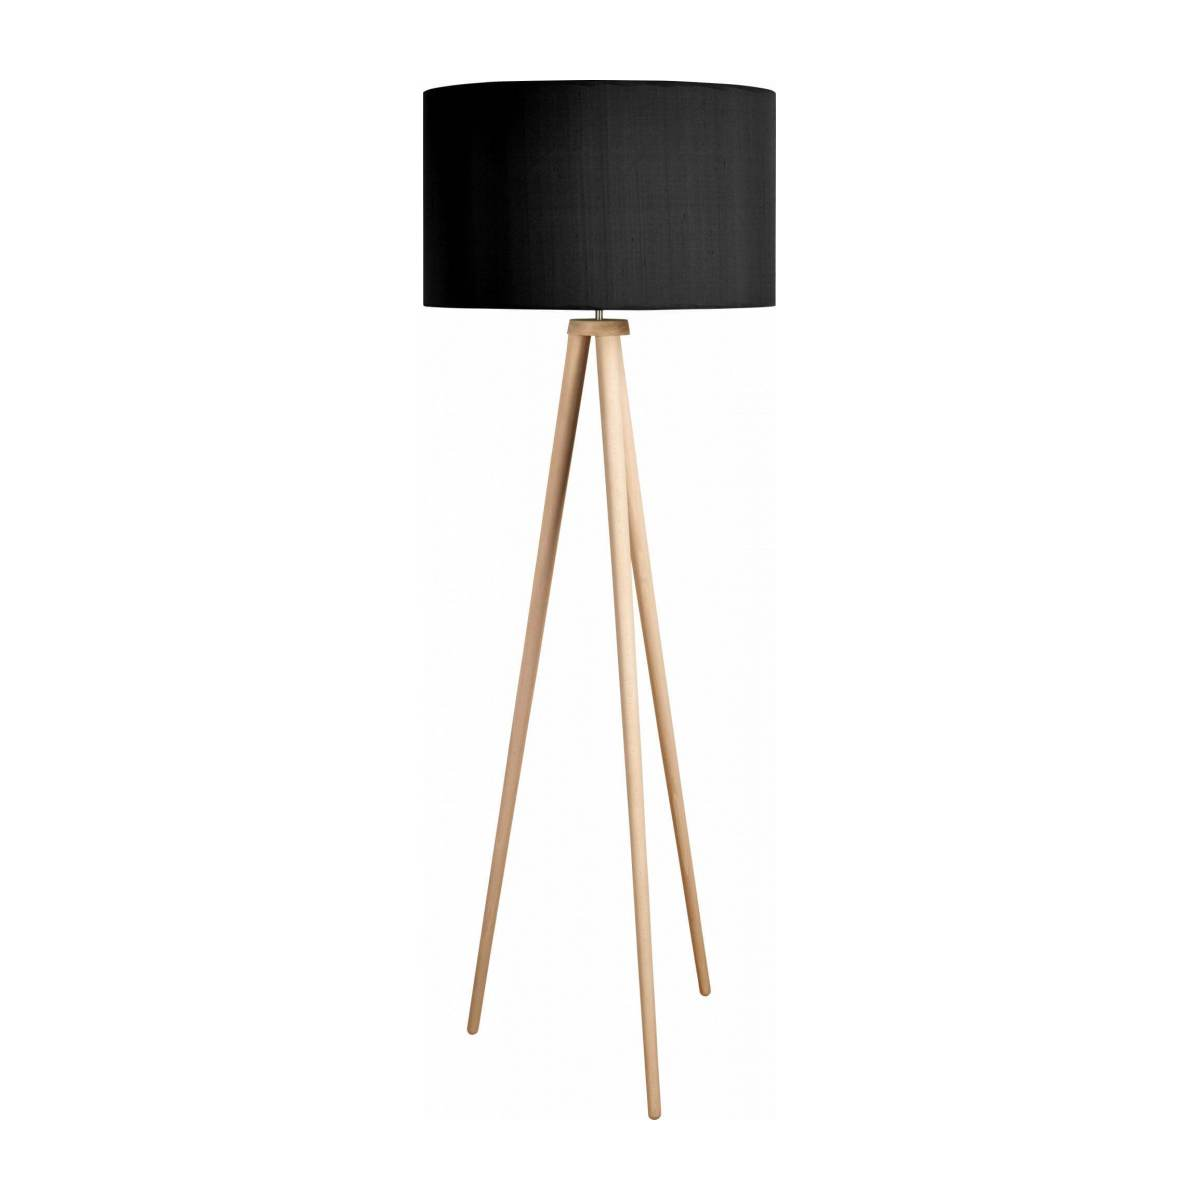 Wooden lamp stand n°2